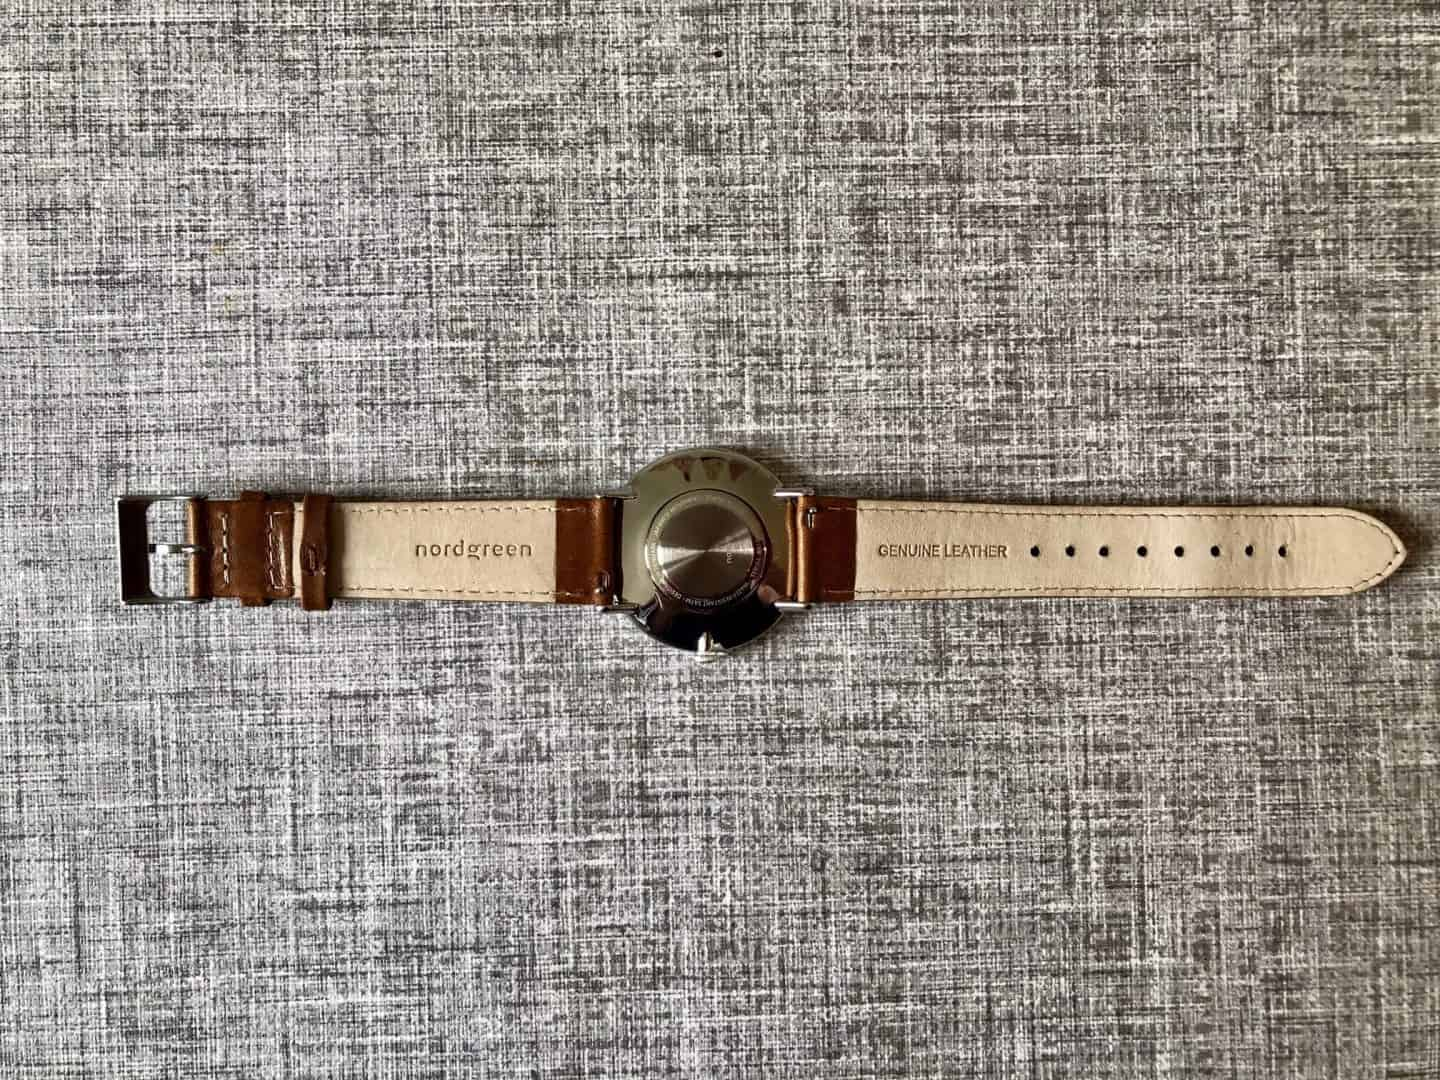 back-of-NORDGREEN-watch